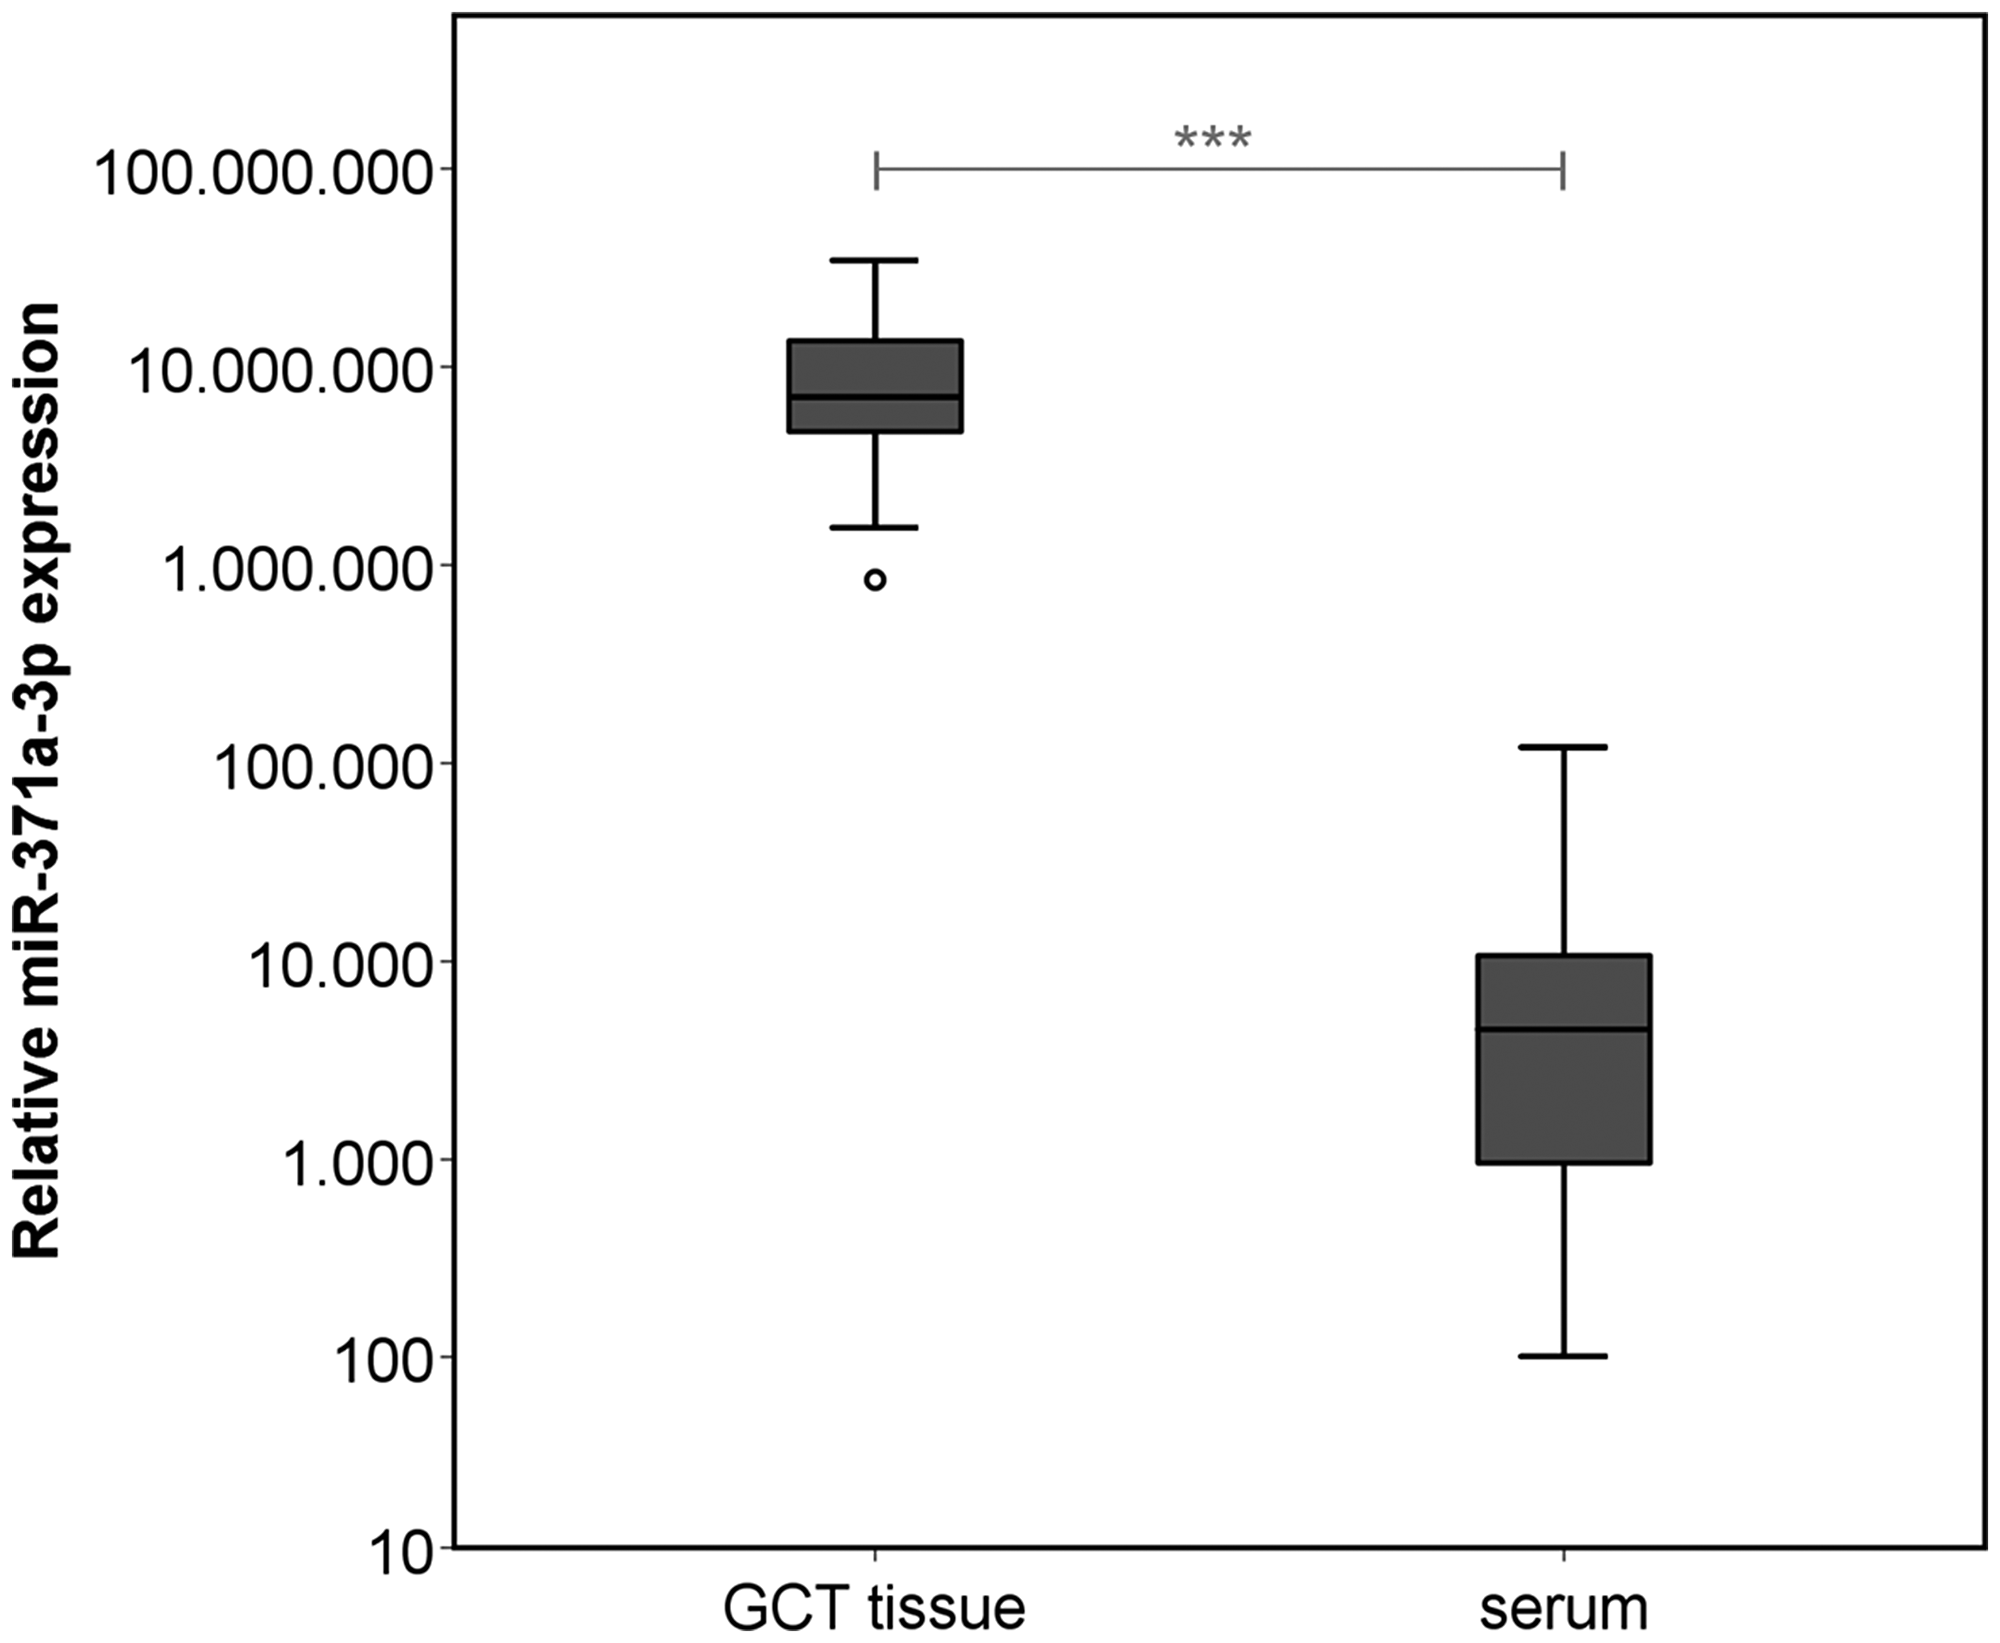 Relative miR-371a-3p expression in GCT tissue (n = 38) and corresponding preoperative serum samples of the same patients (n = 36).